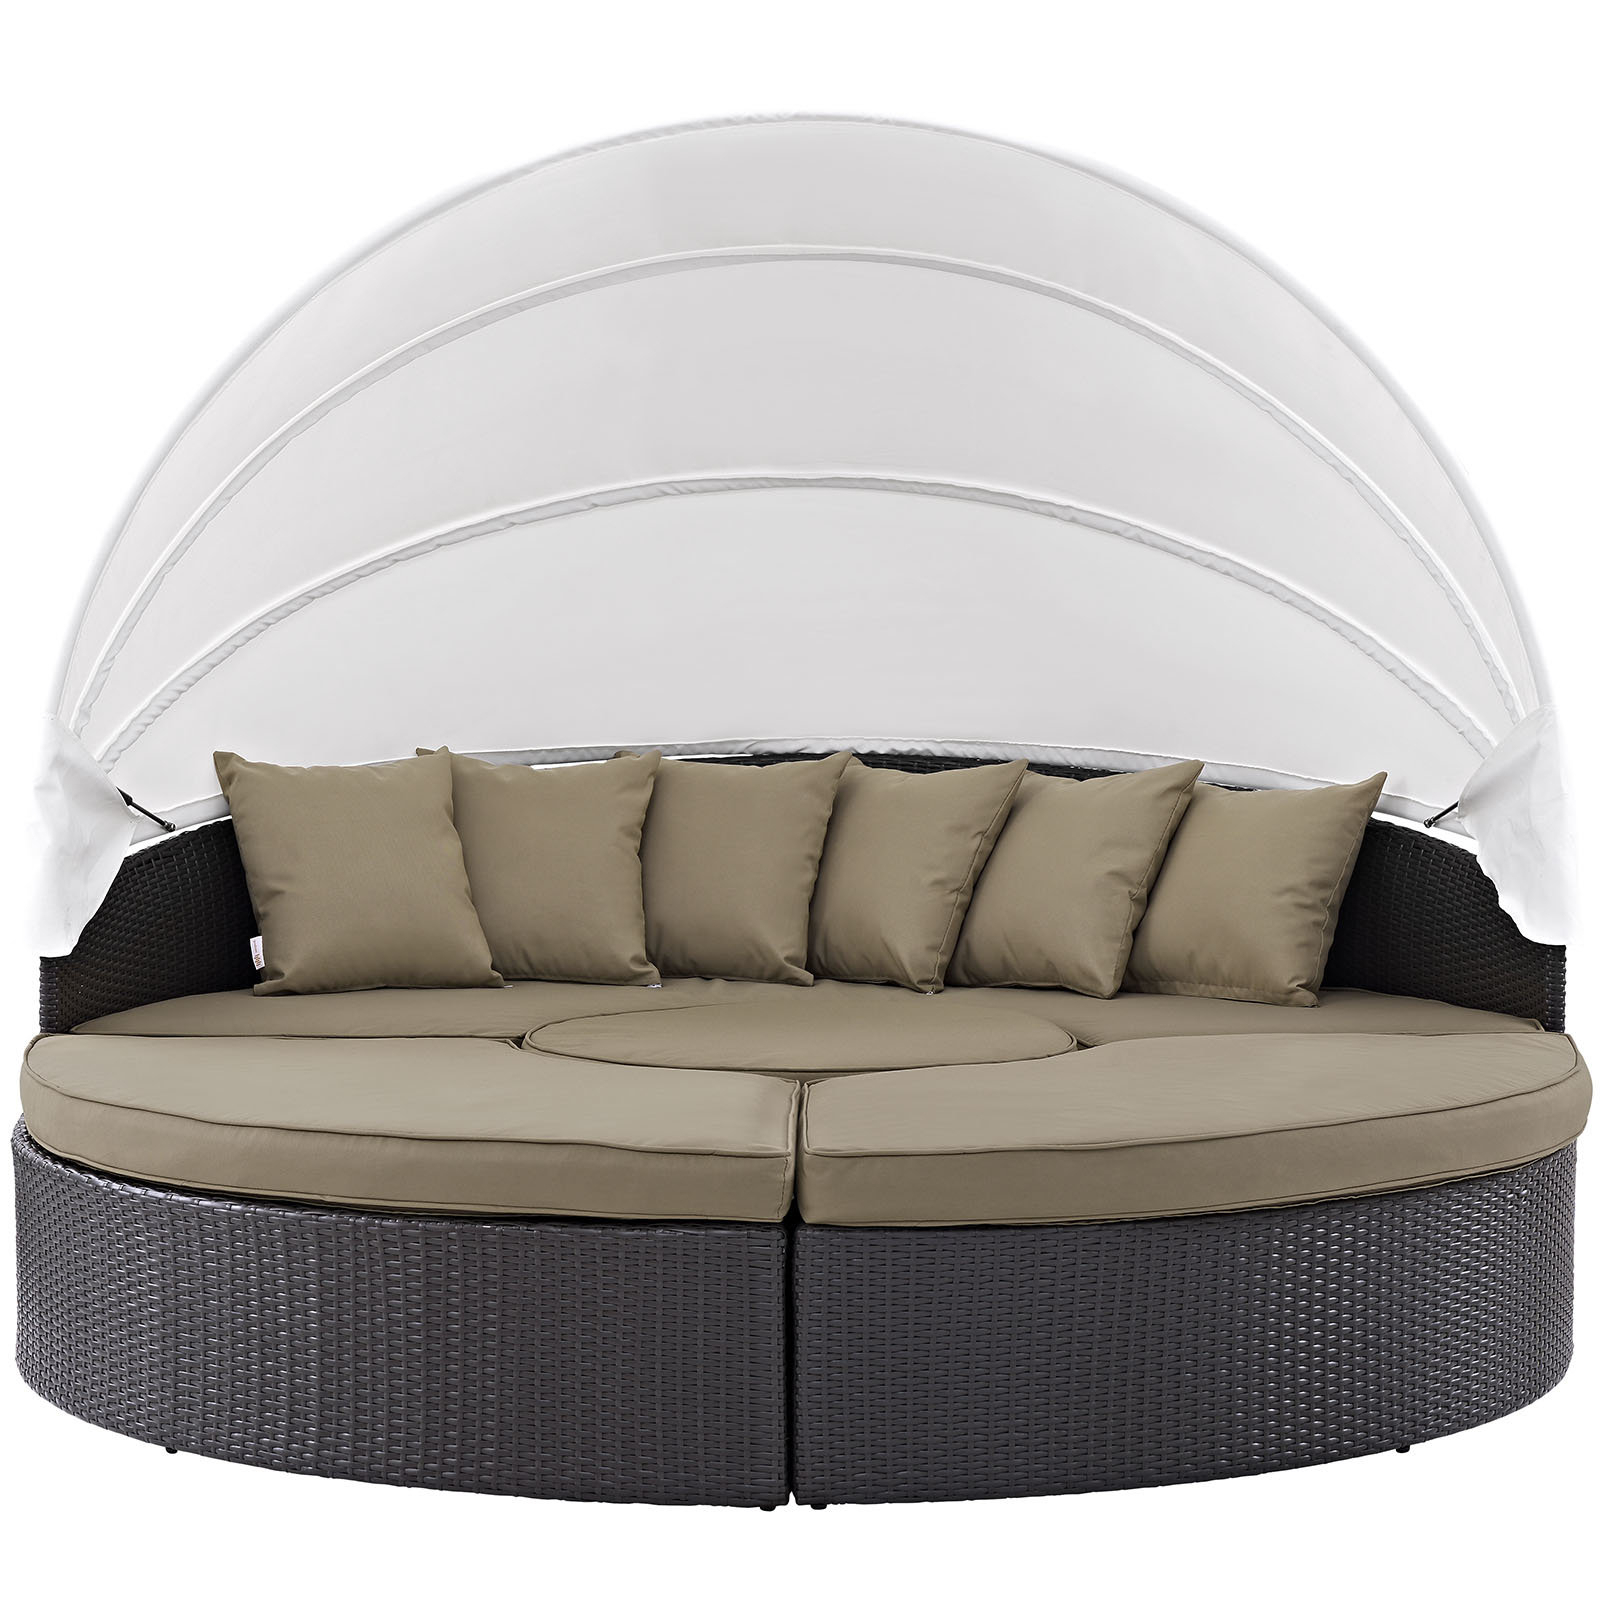 Keiran Daybeds With Cushions For Trendy Brentwood Patio Daybed With Cushions (View 17 of 20)